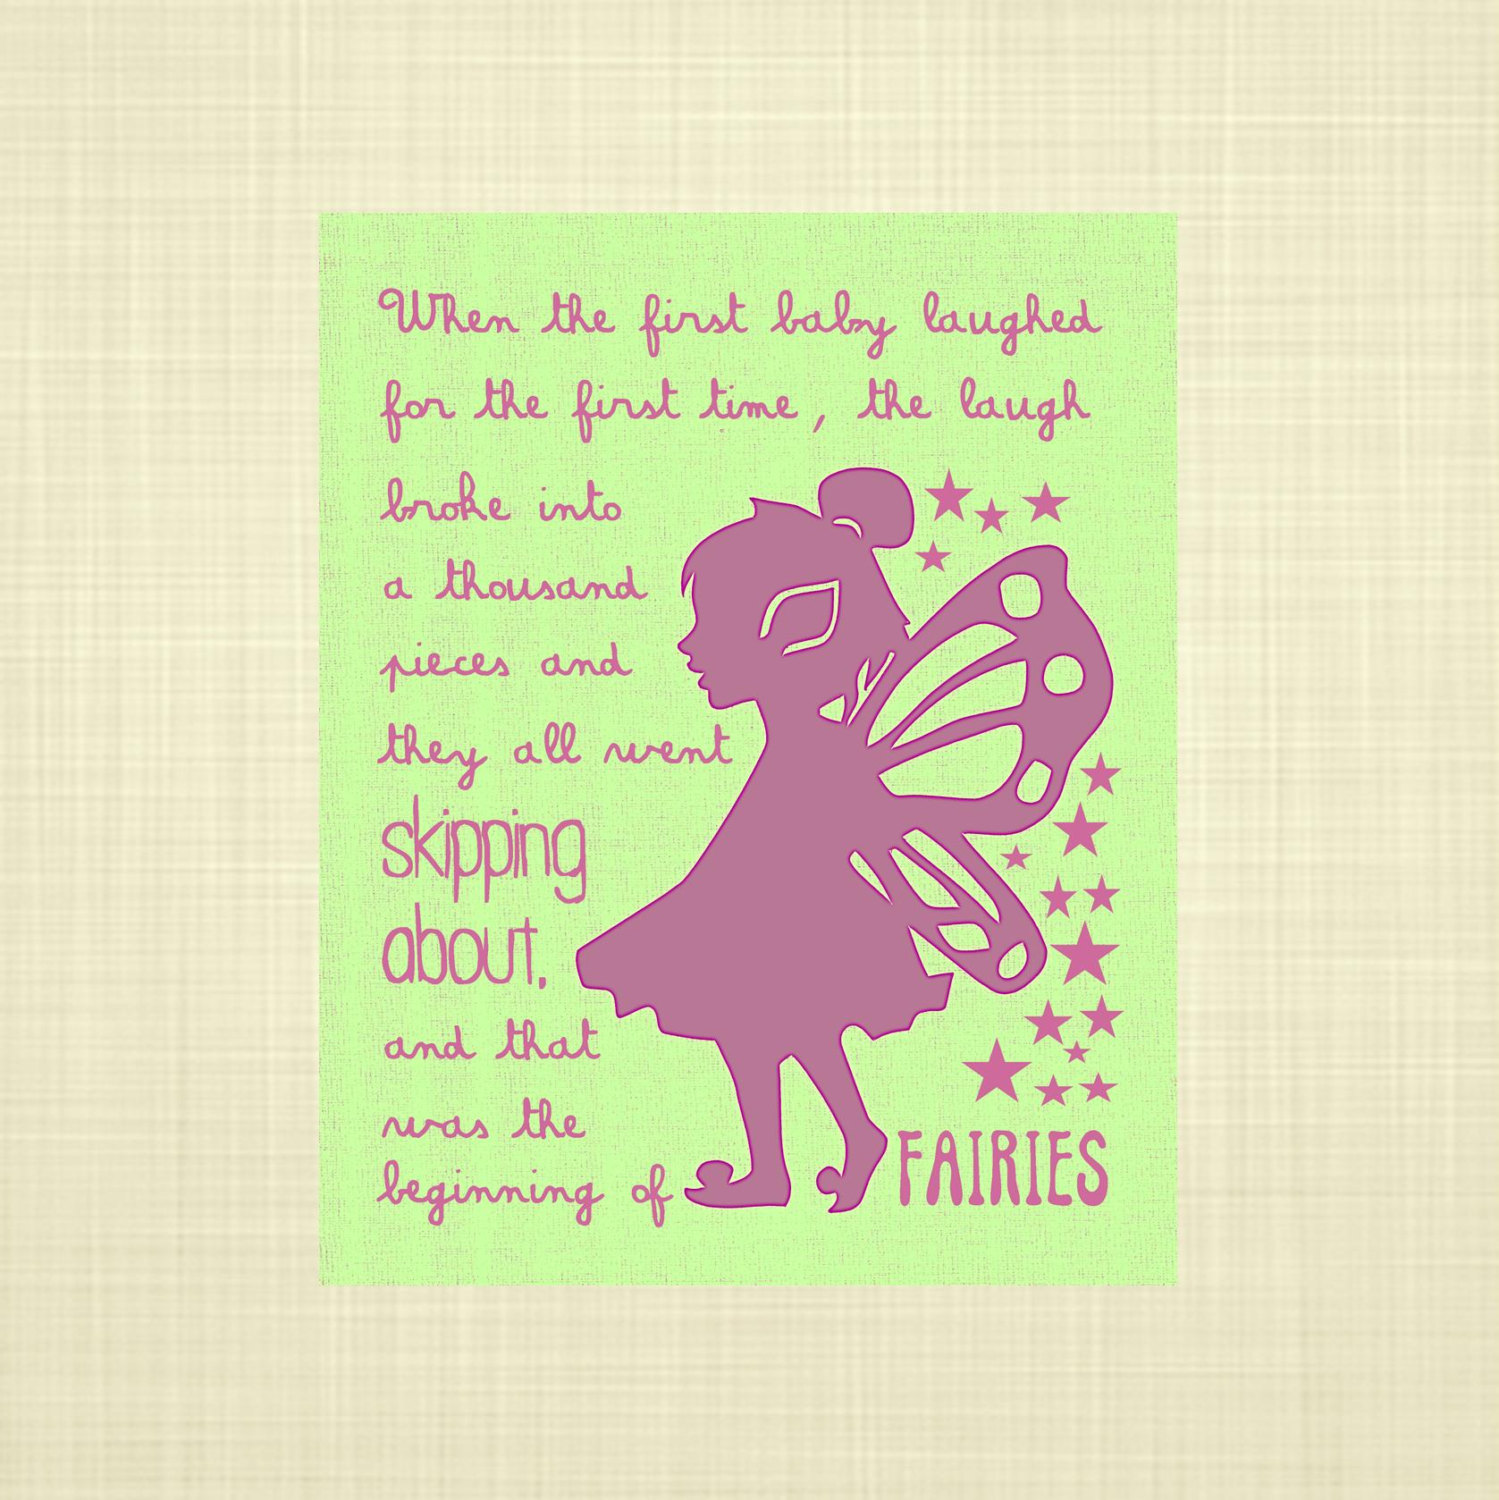 Quotes And Sayings: Tinkerbell Quotes And Sayings. QuotesGram